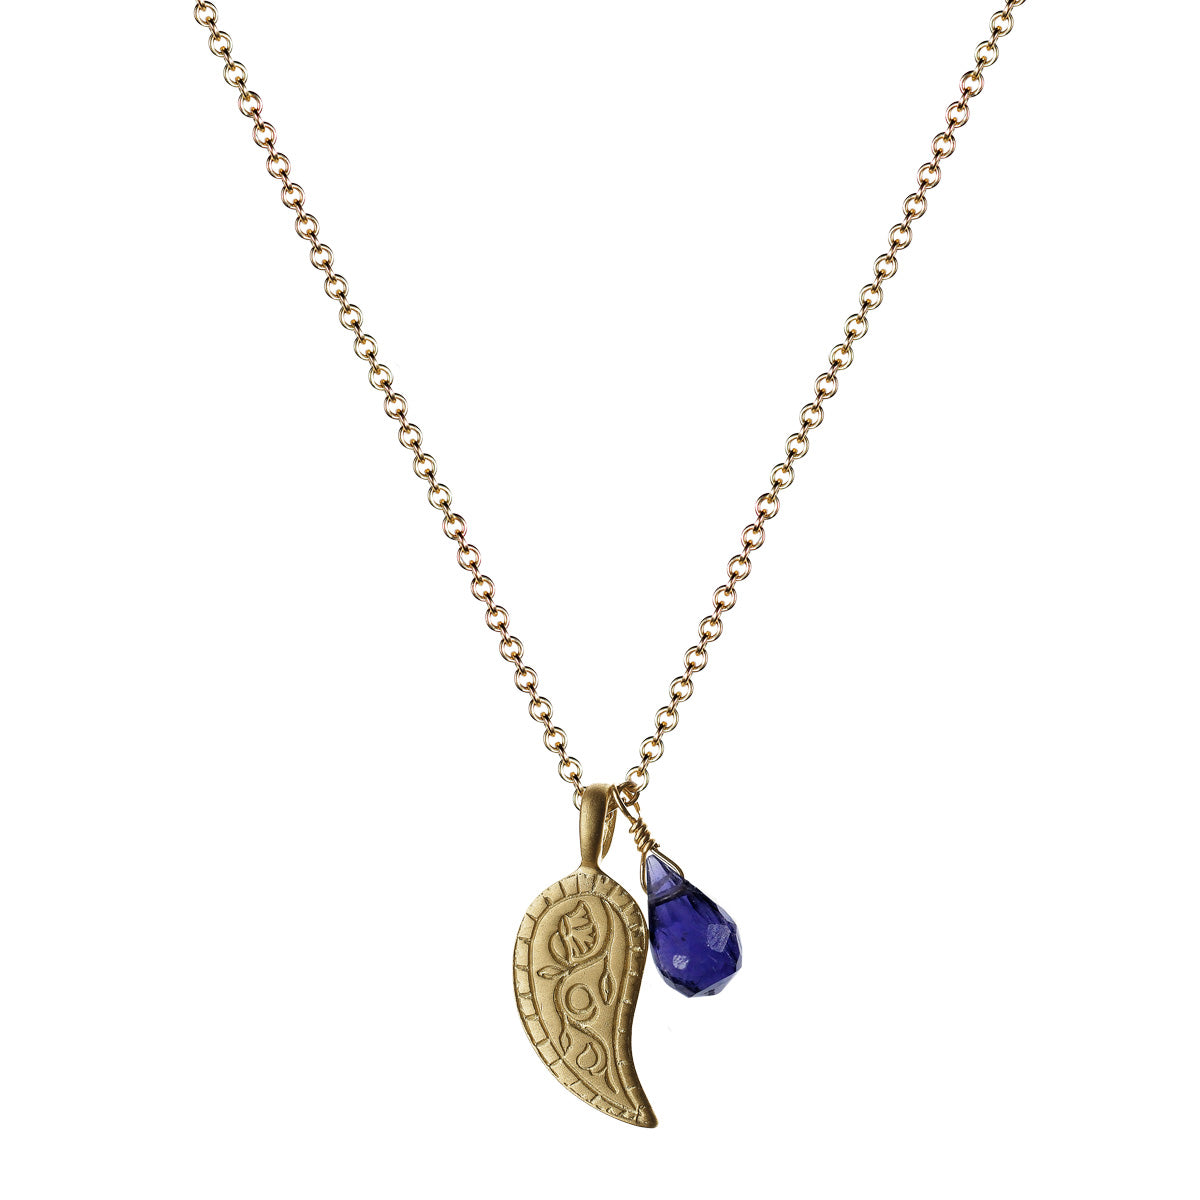 10K Gold Paisley Trinket Pendant with Iolite Bead